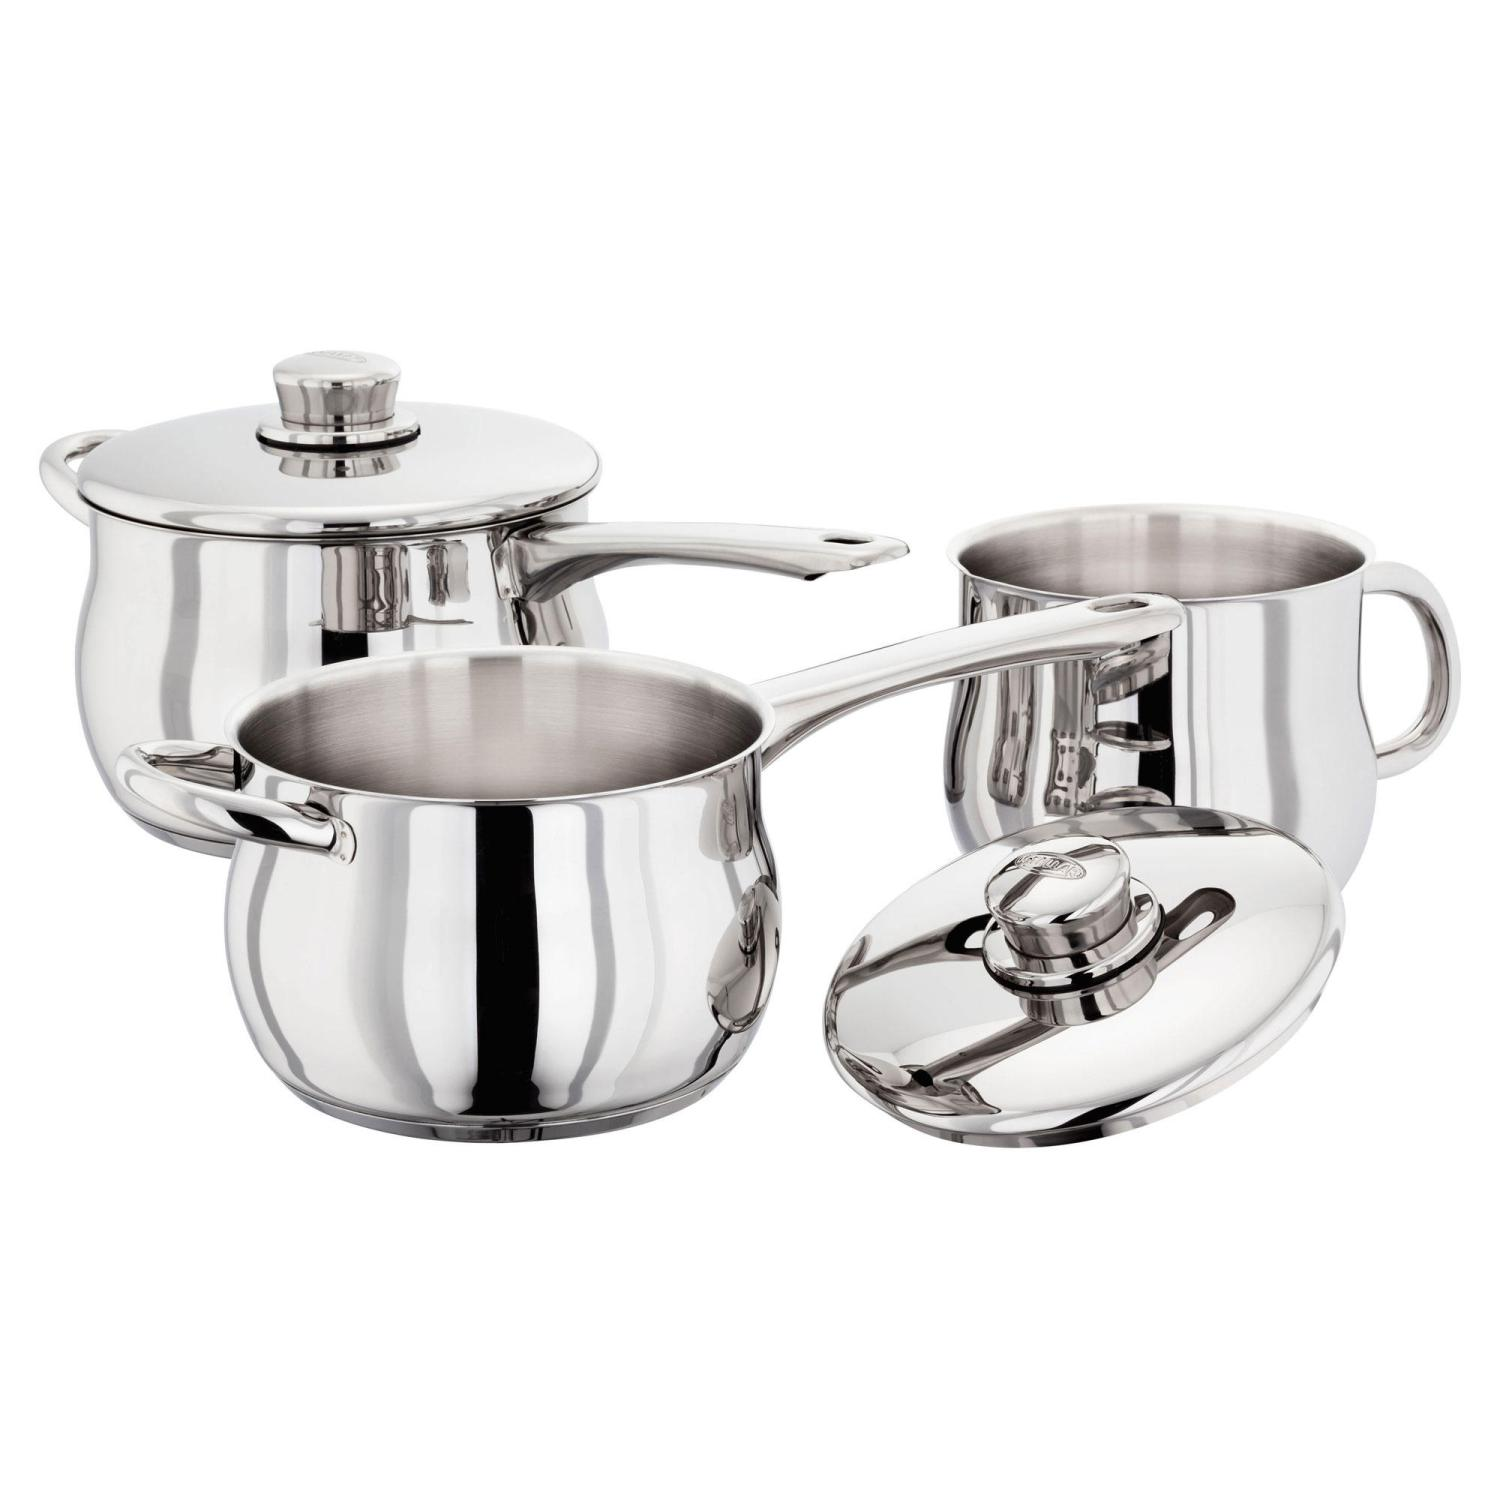 1000_Deep_Saucepan_Three_Piece_Set